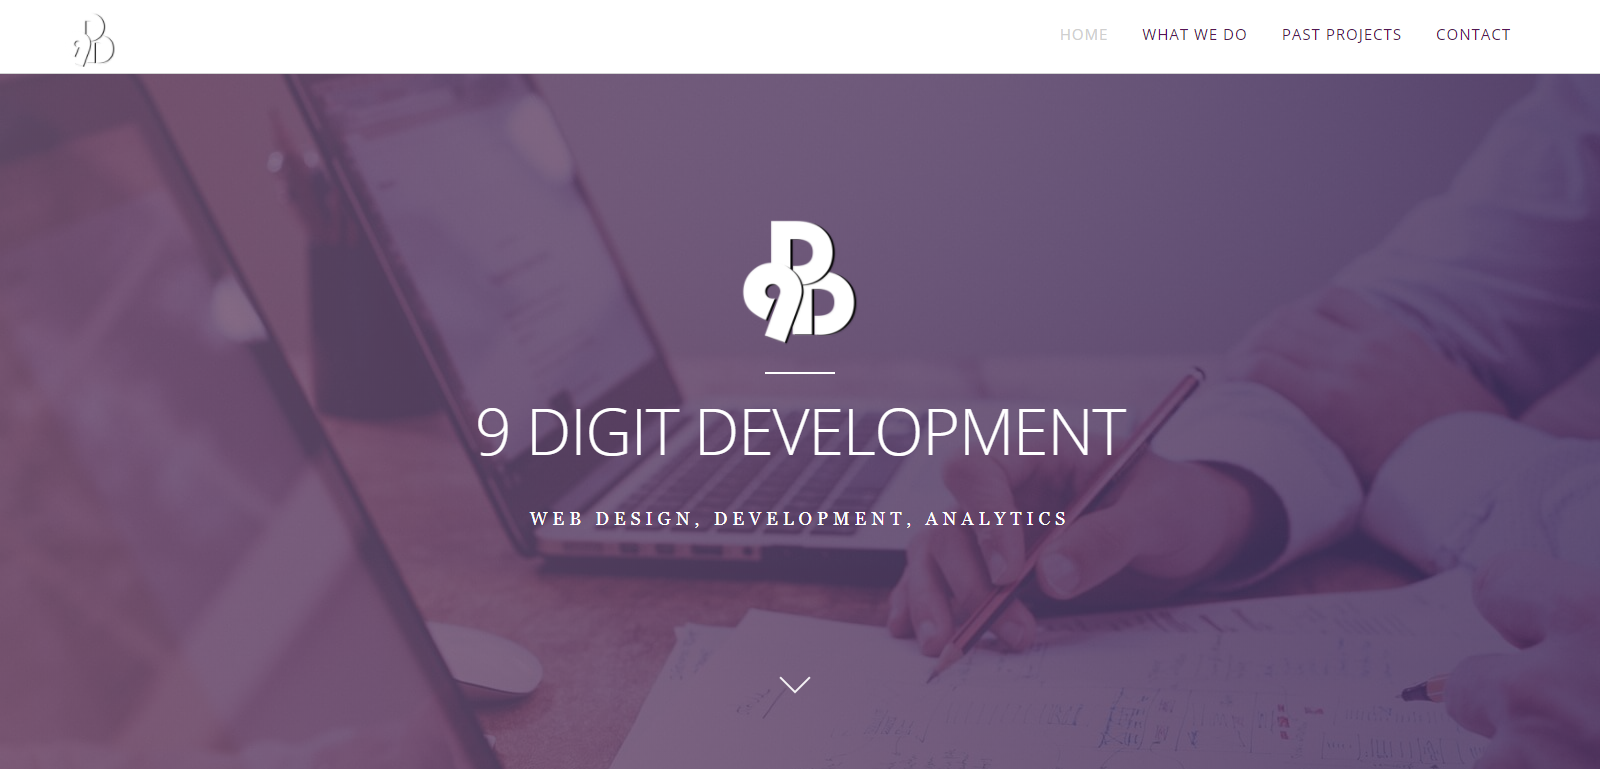 9 Digit Development